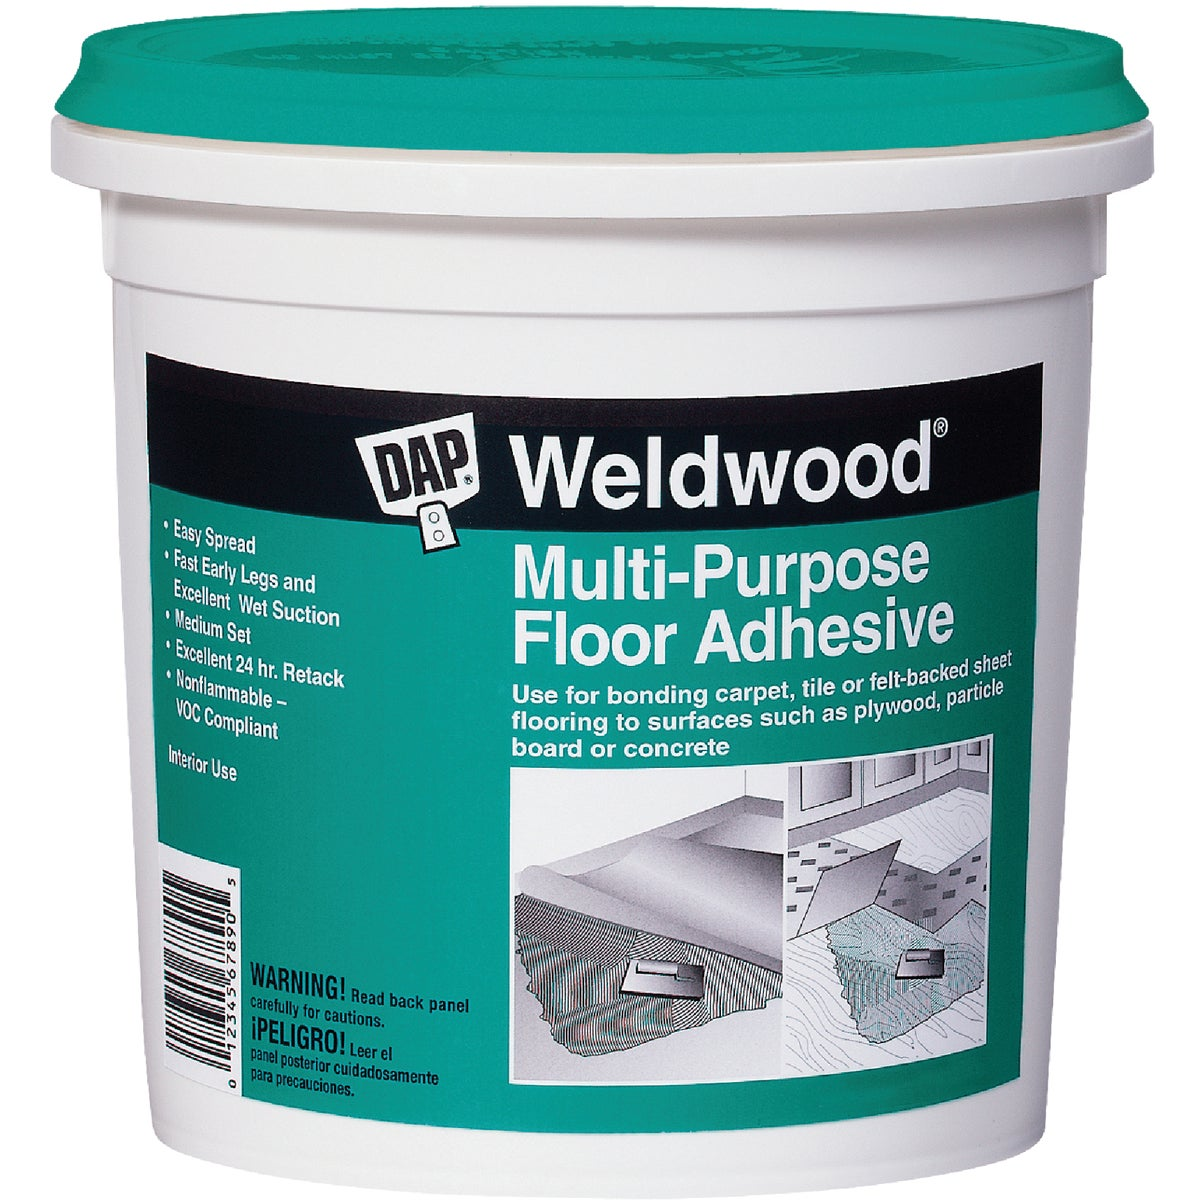 4GAL MP FLOOR ADHESIVE - 00144 by Dap Inc